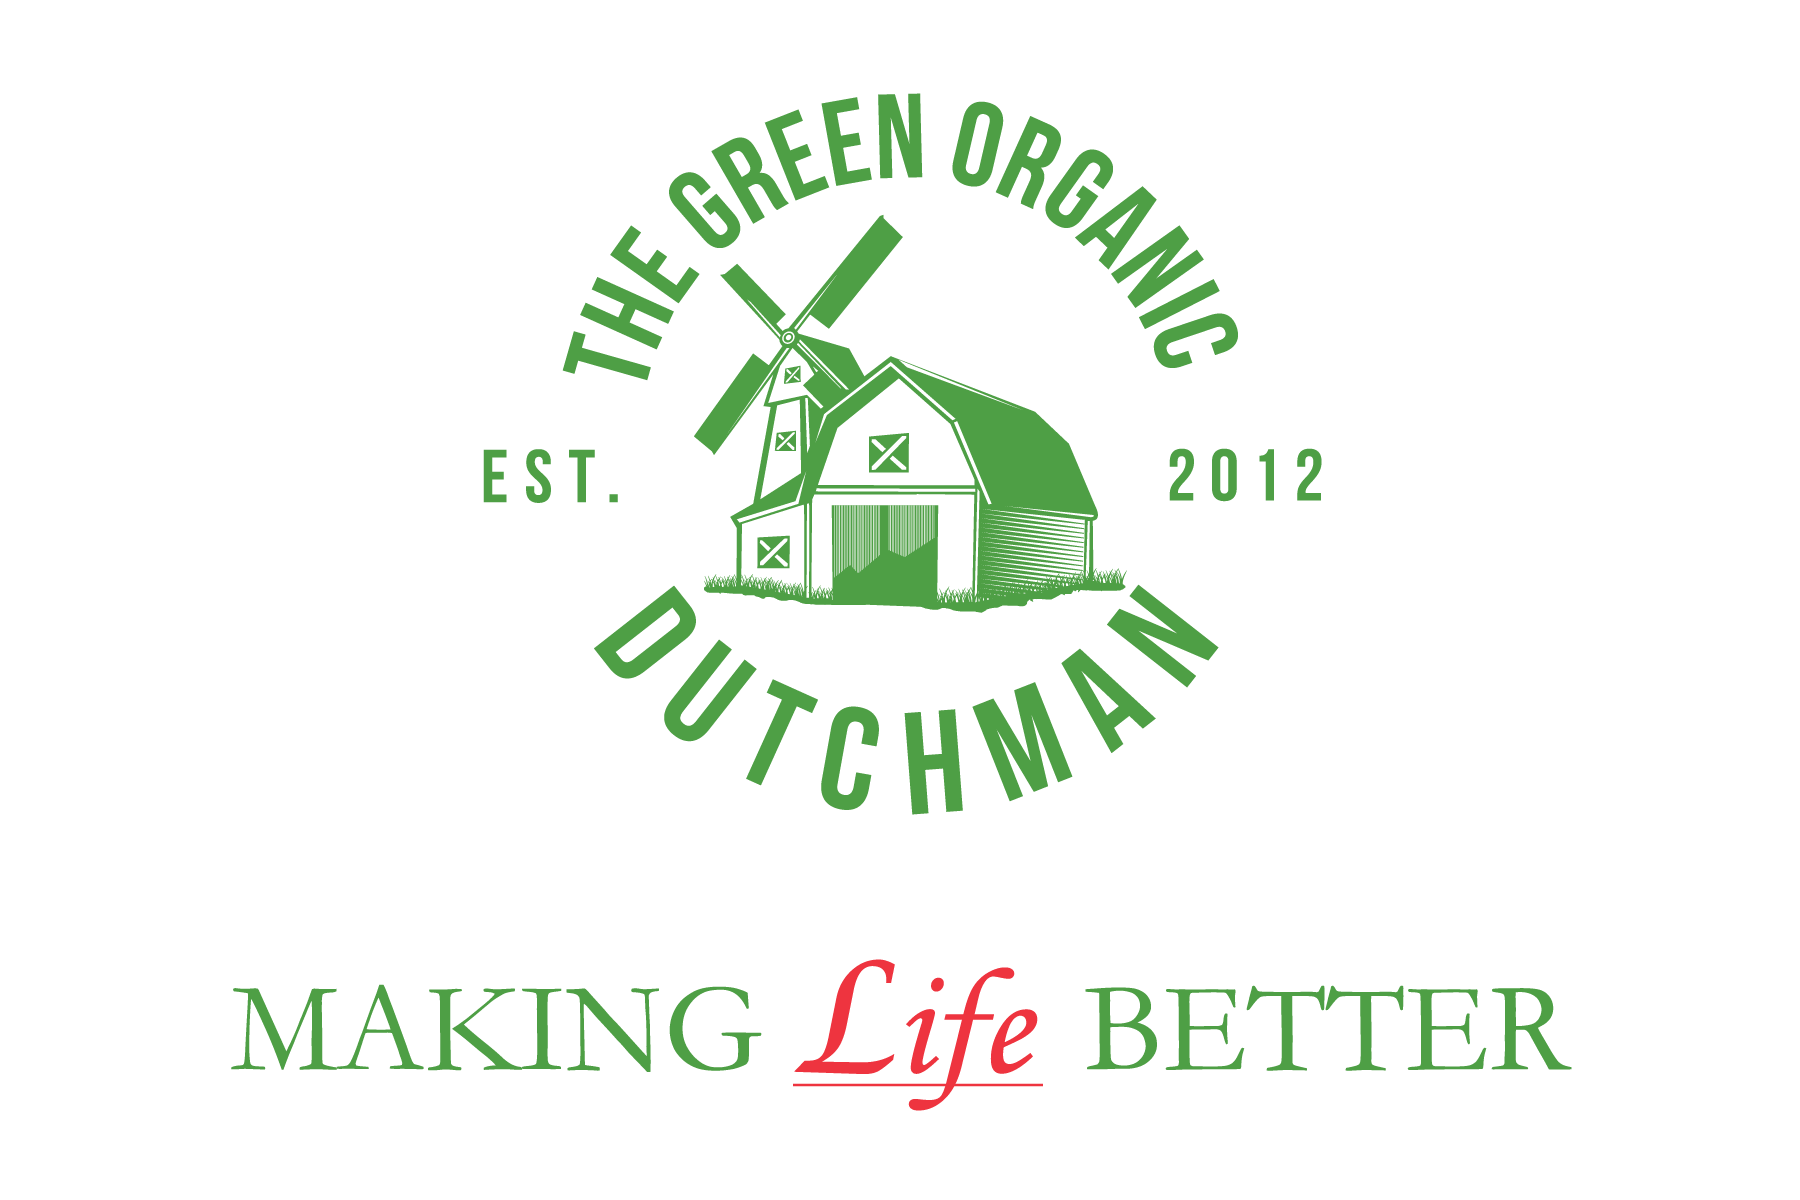 The Green Organic Dutchman Logo